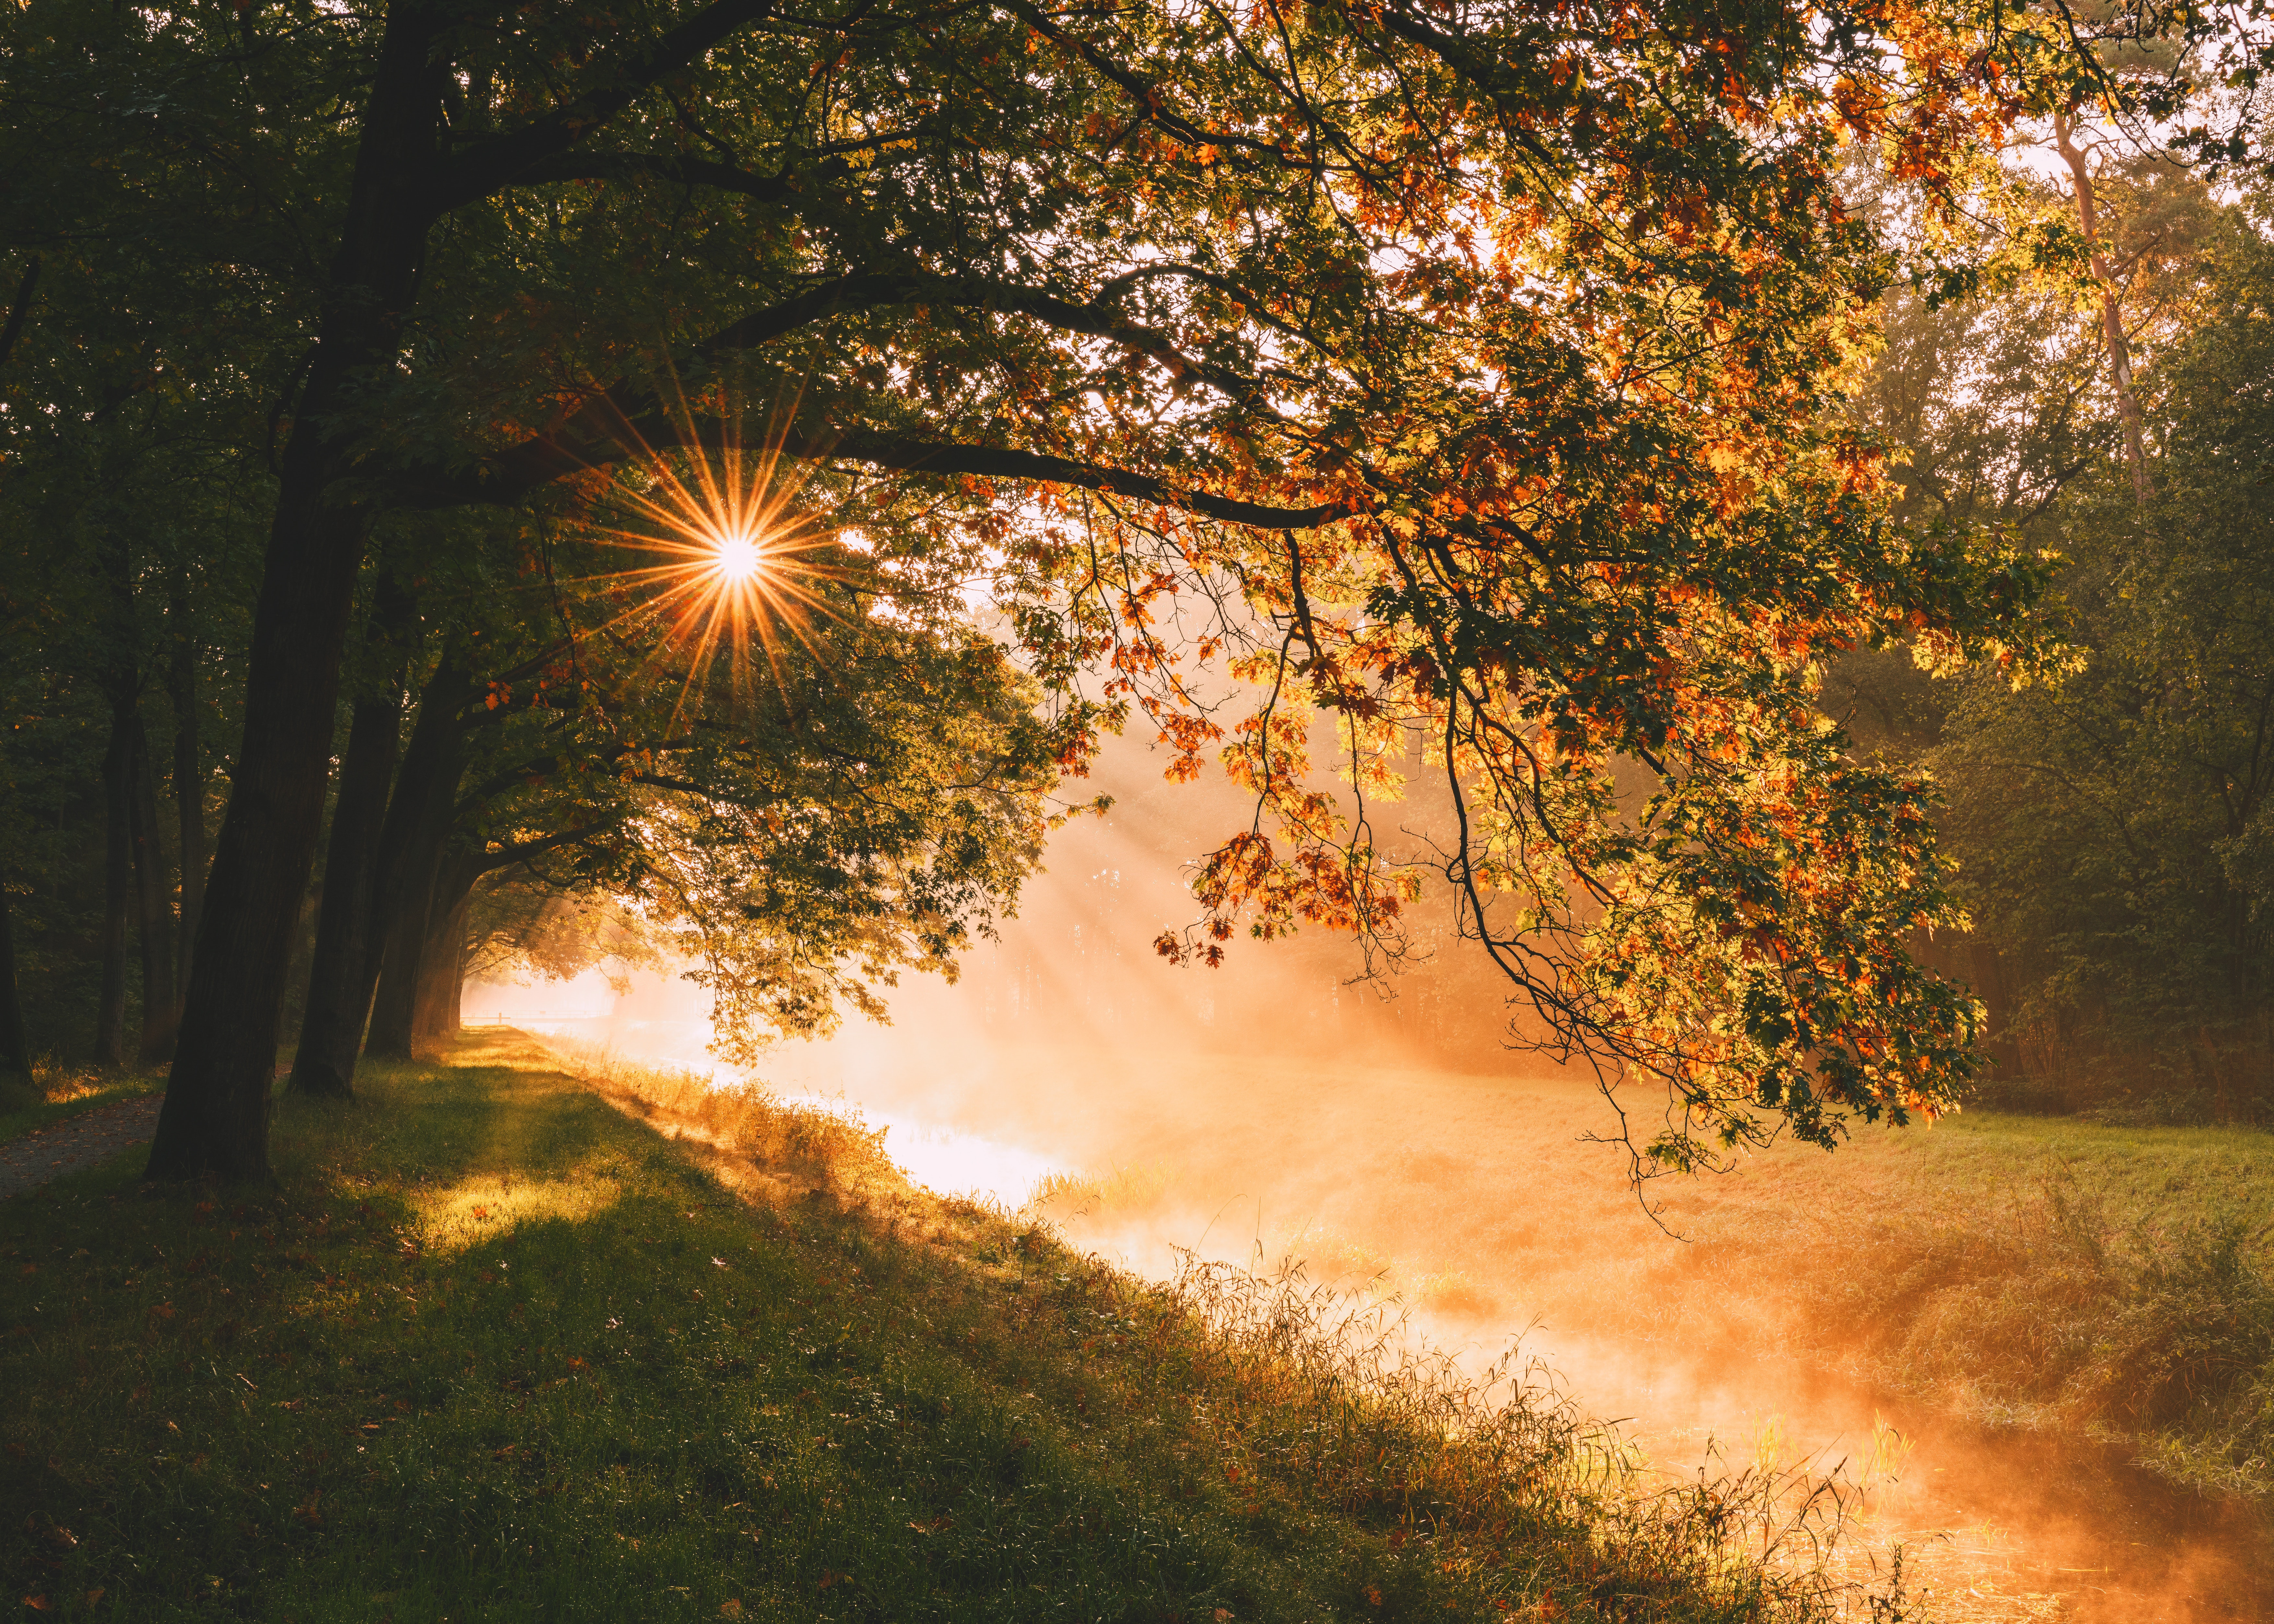 134061 Screensavers and Wallpapers Beams for phone. Download Landscape, Nature, Trees, Sun, Beams, Rays, Sunlight pictures for free